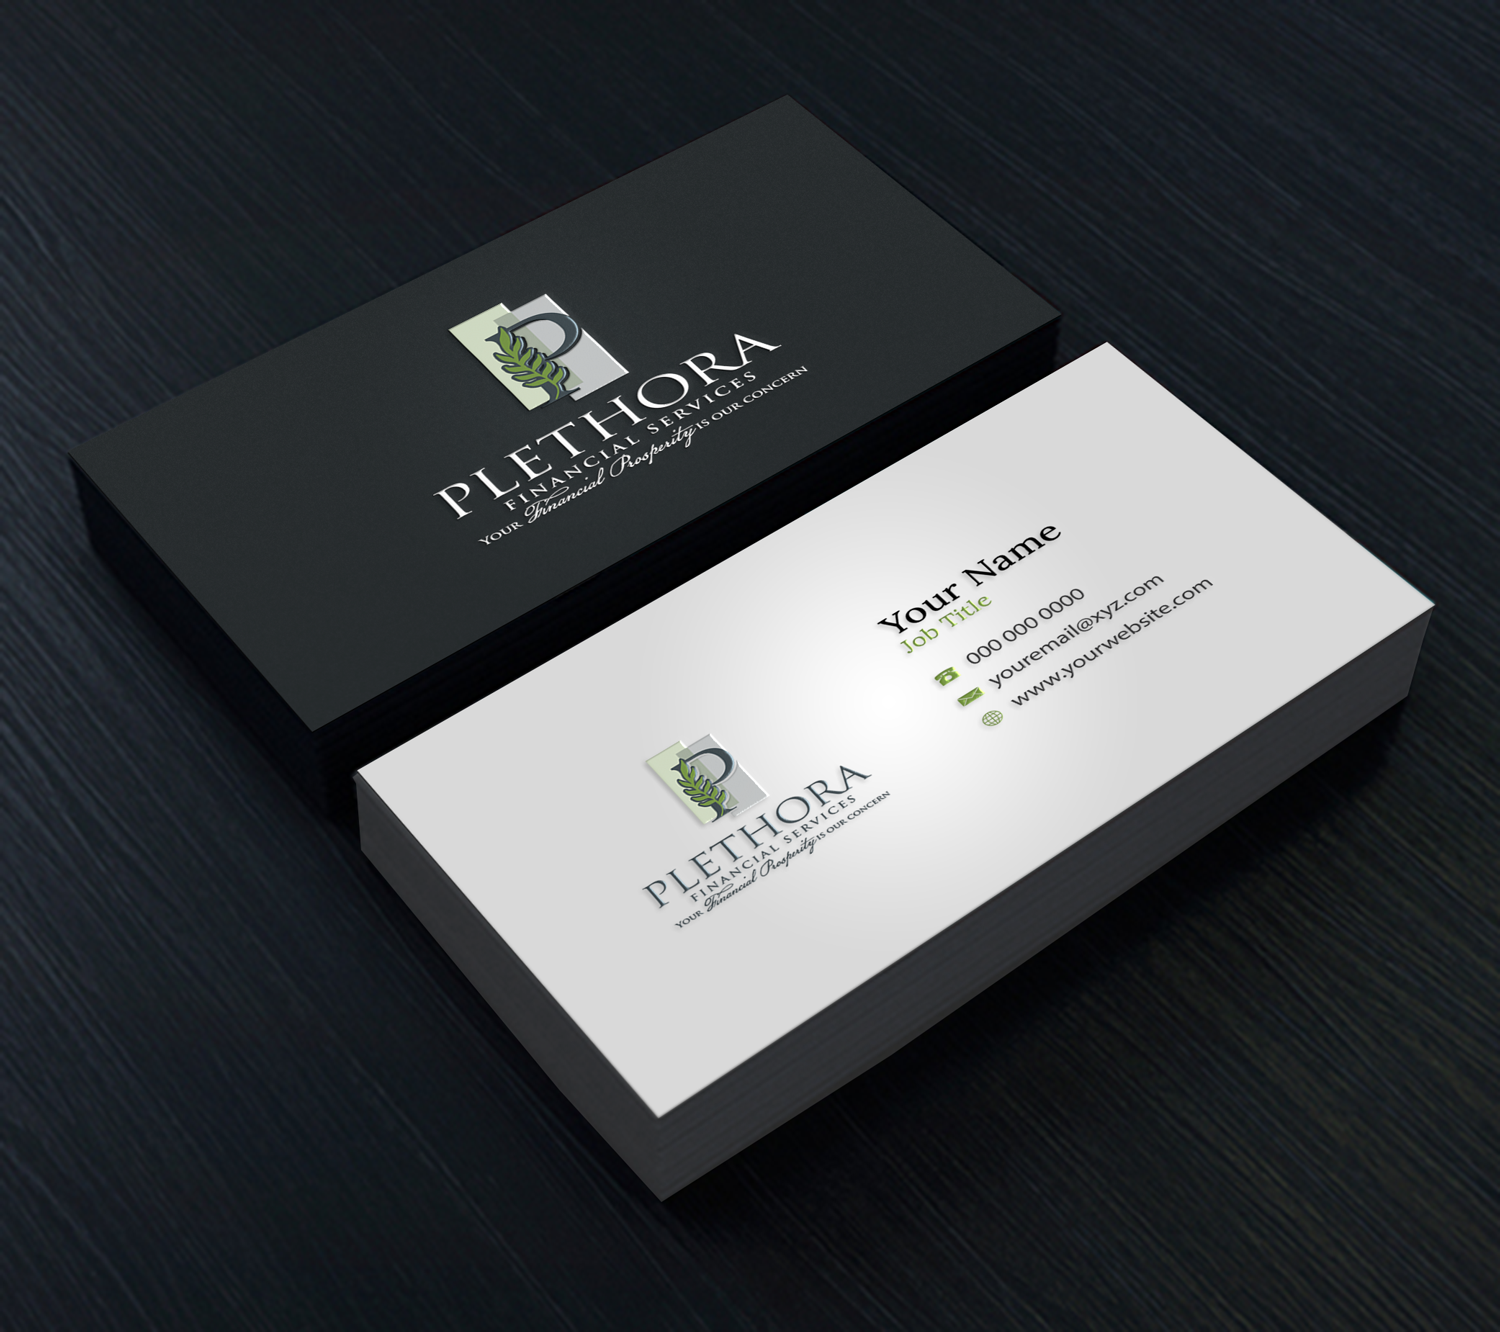 Elegant serious financial service business card design for a business card design by riz for this project design 12494155 reheart Choice Image